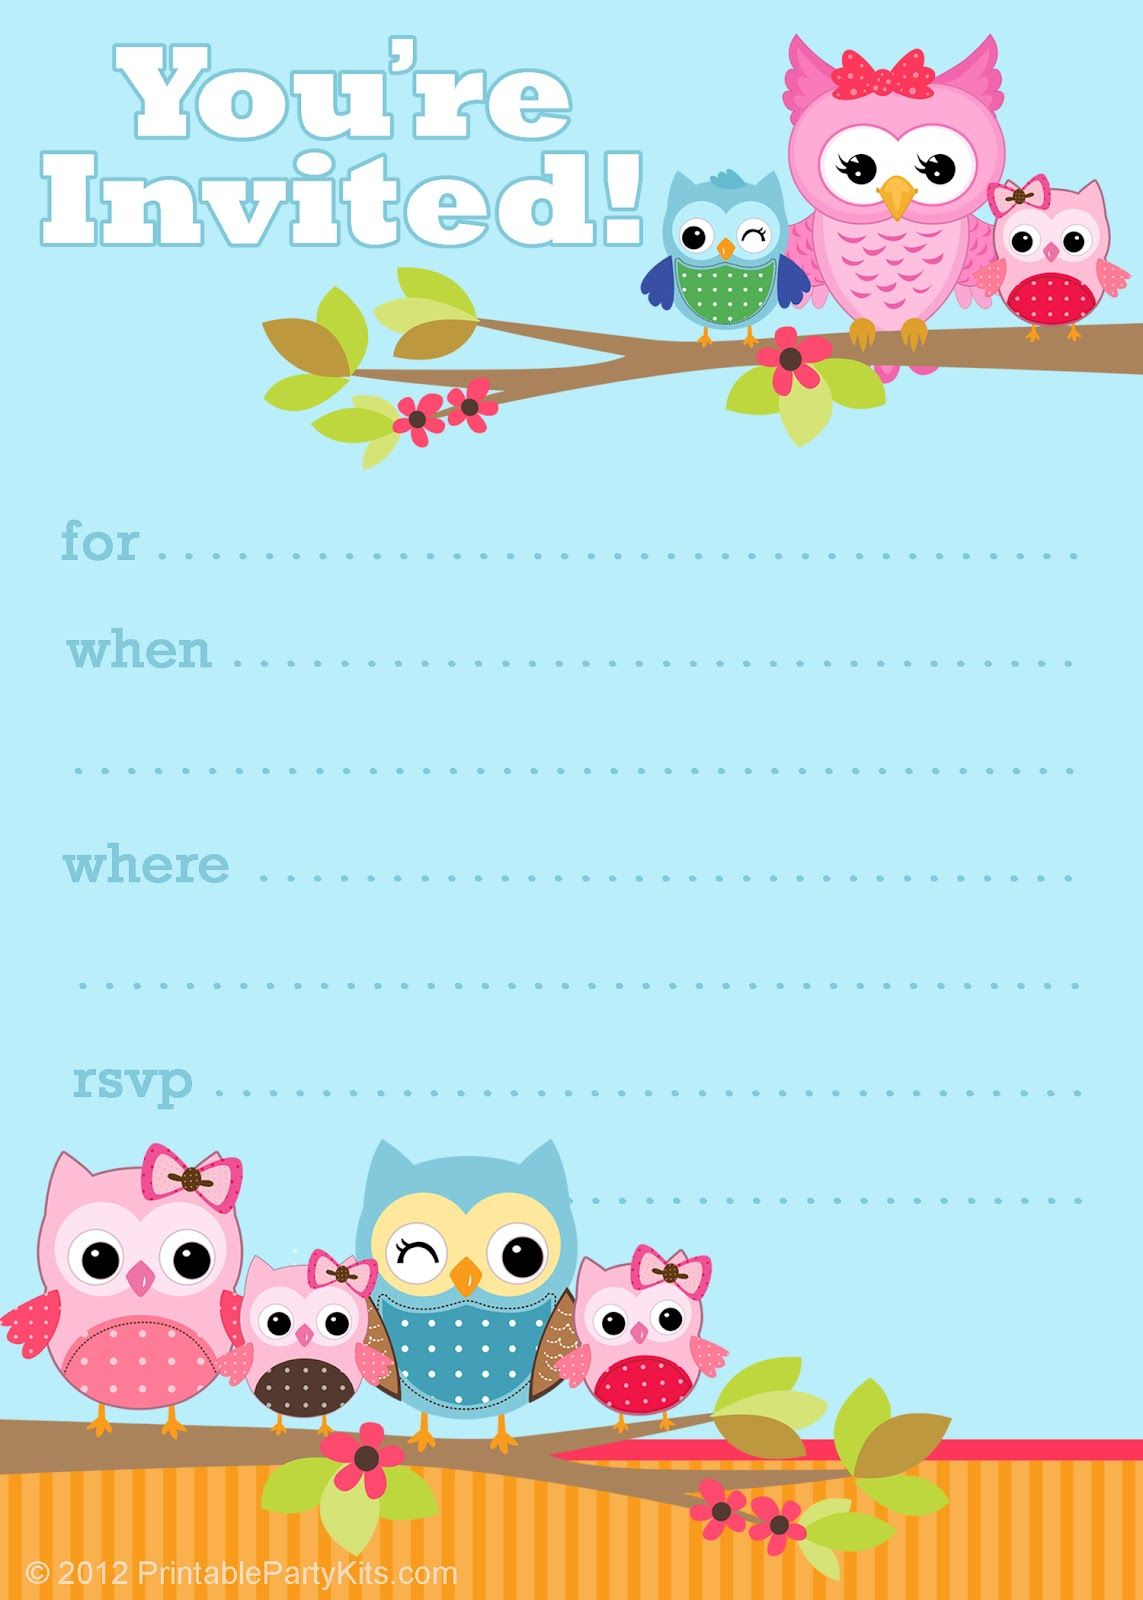 41 Printable Birthday Party Cards & Invitations For Kids To Make - Free Printable Birthday Invitation Cards